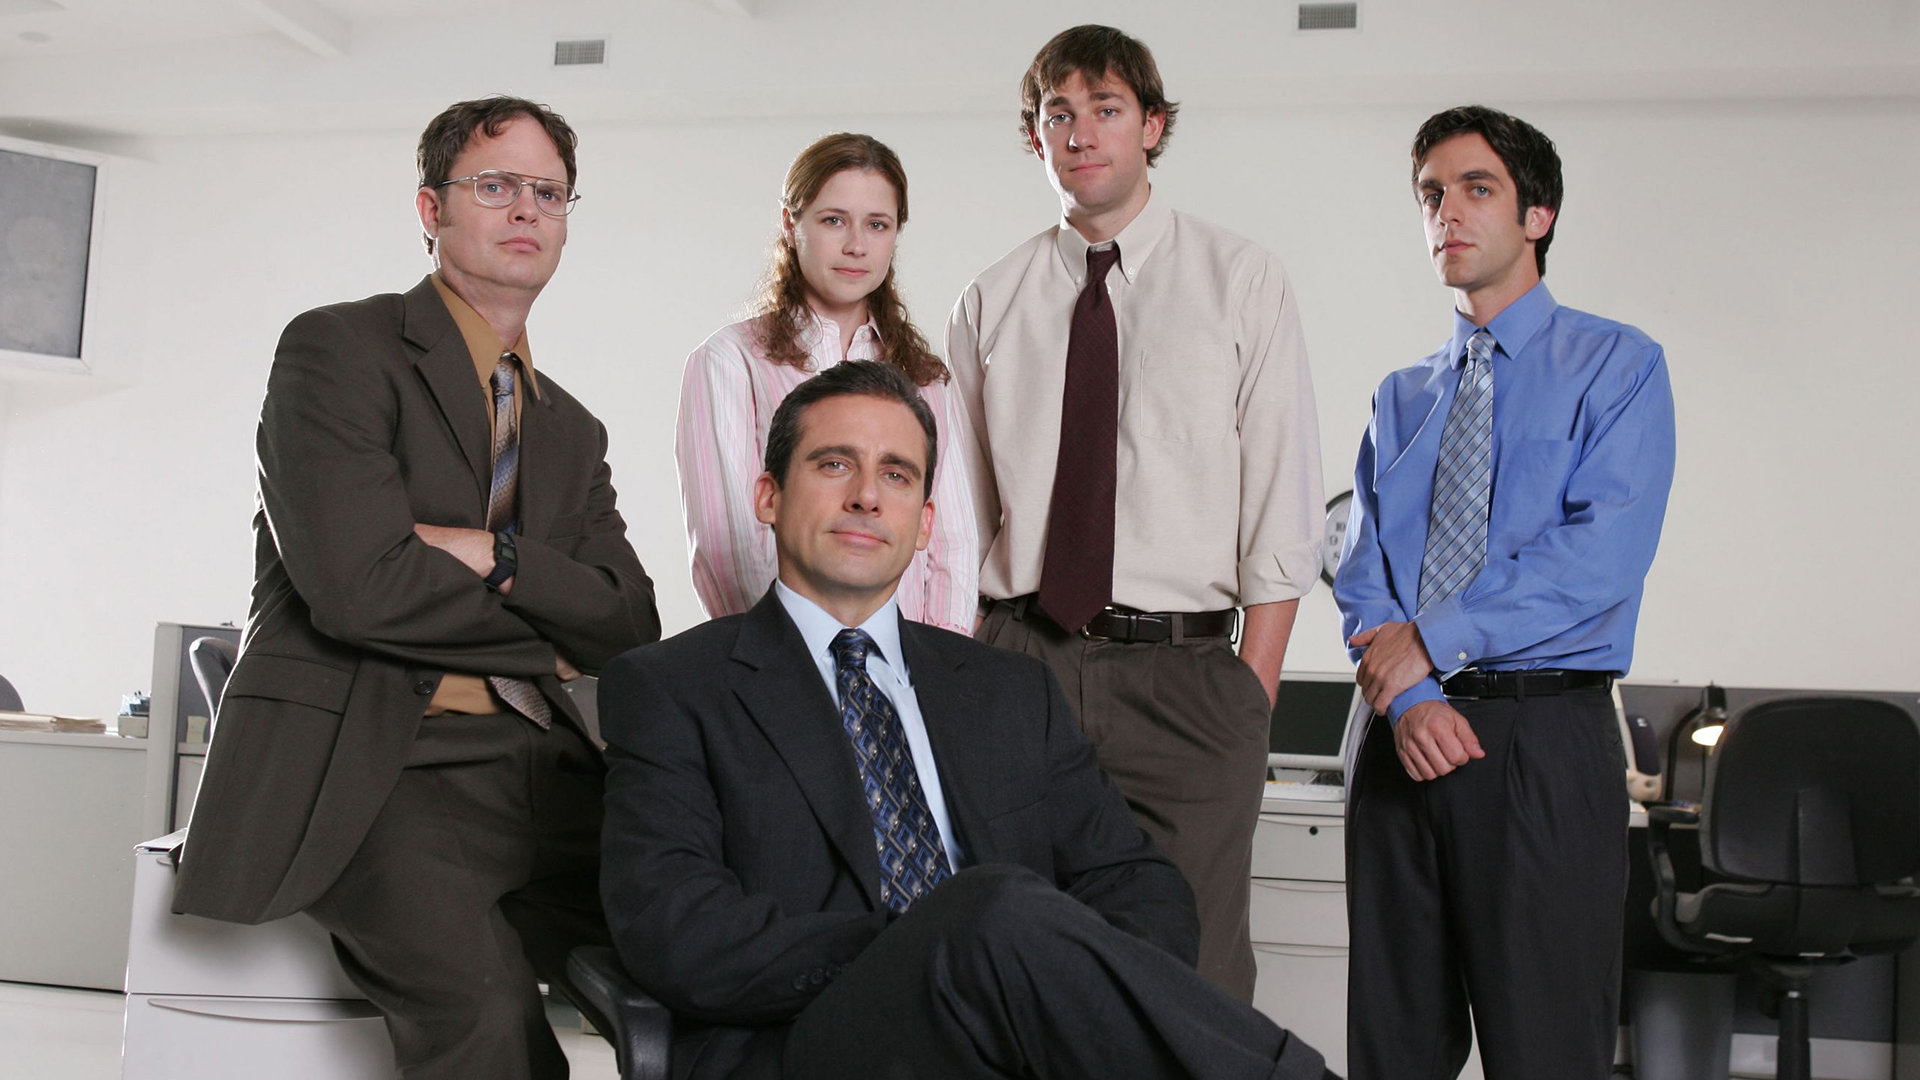 The Office (US) wallpapers 1920x1080 Full HD (1080p) desktop ...